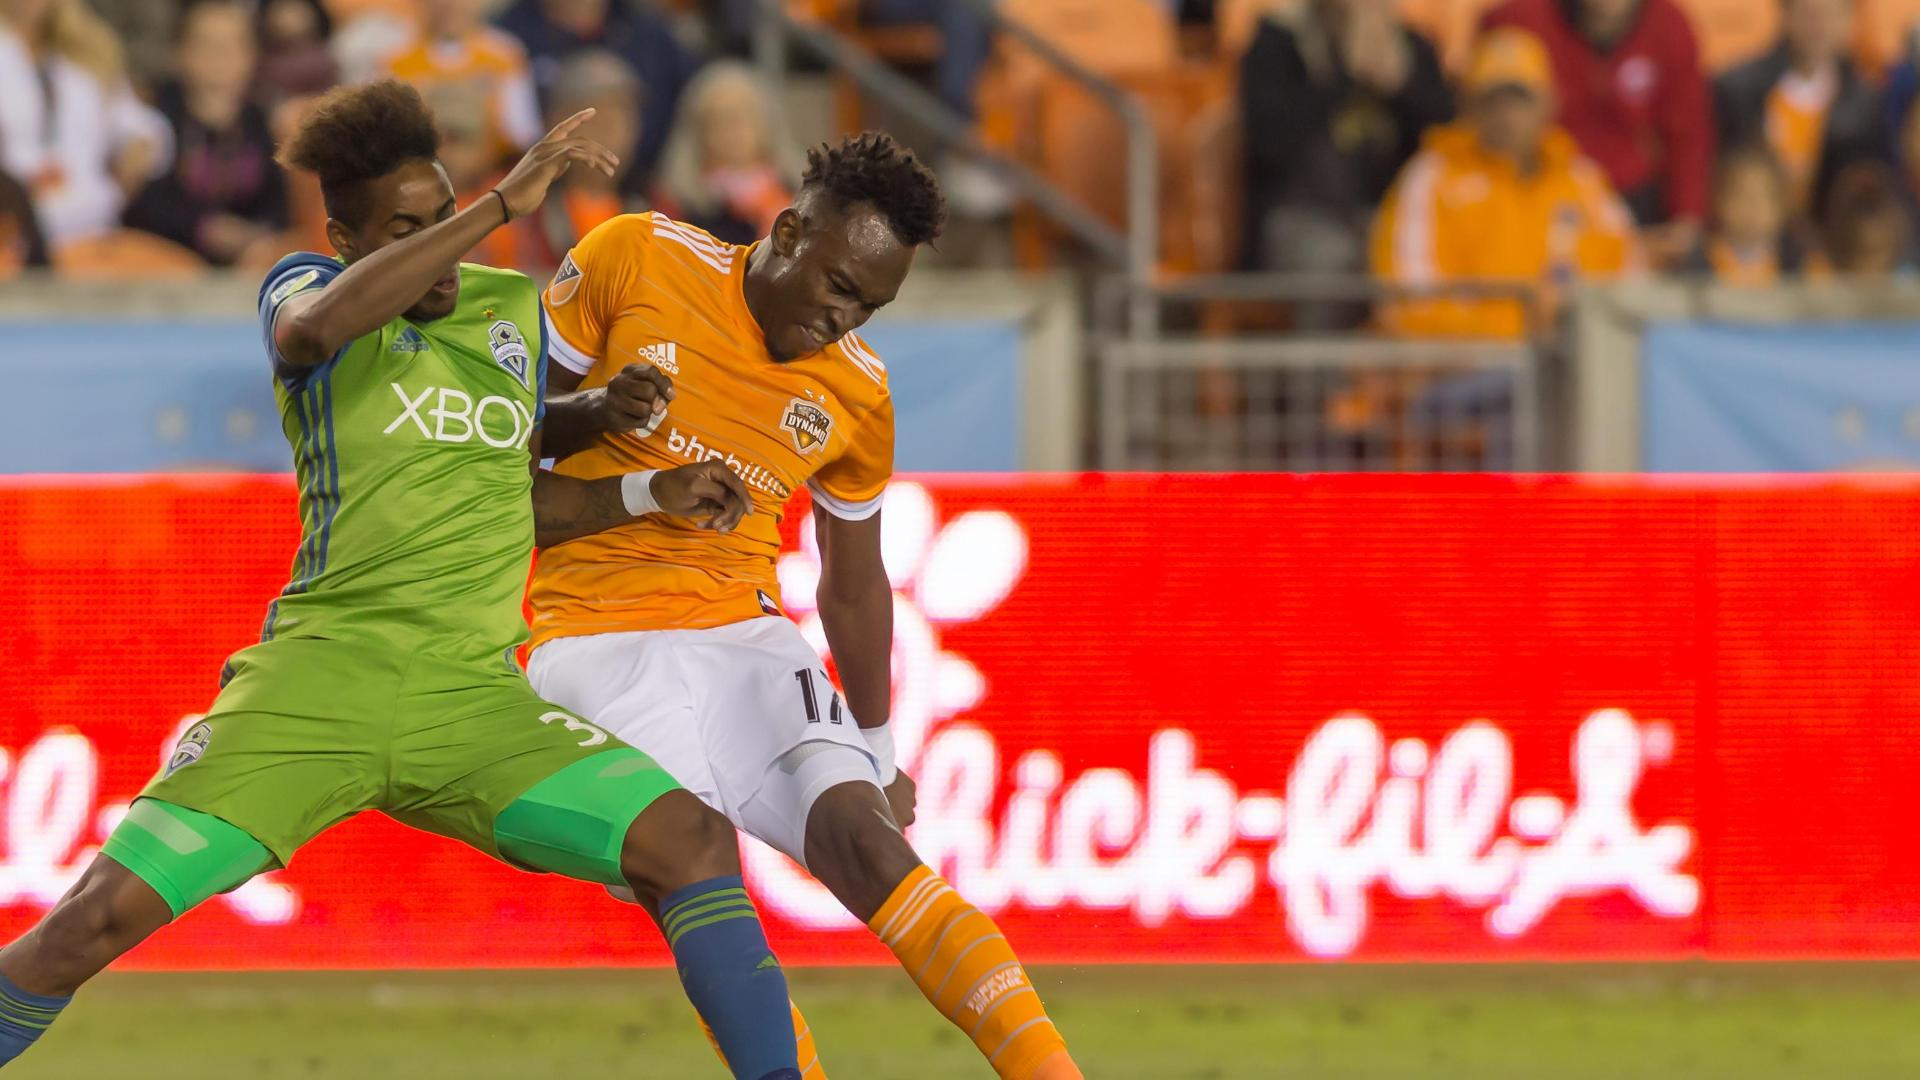 Video via MLS: Dynamo 2-1 Sounders